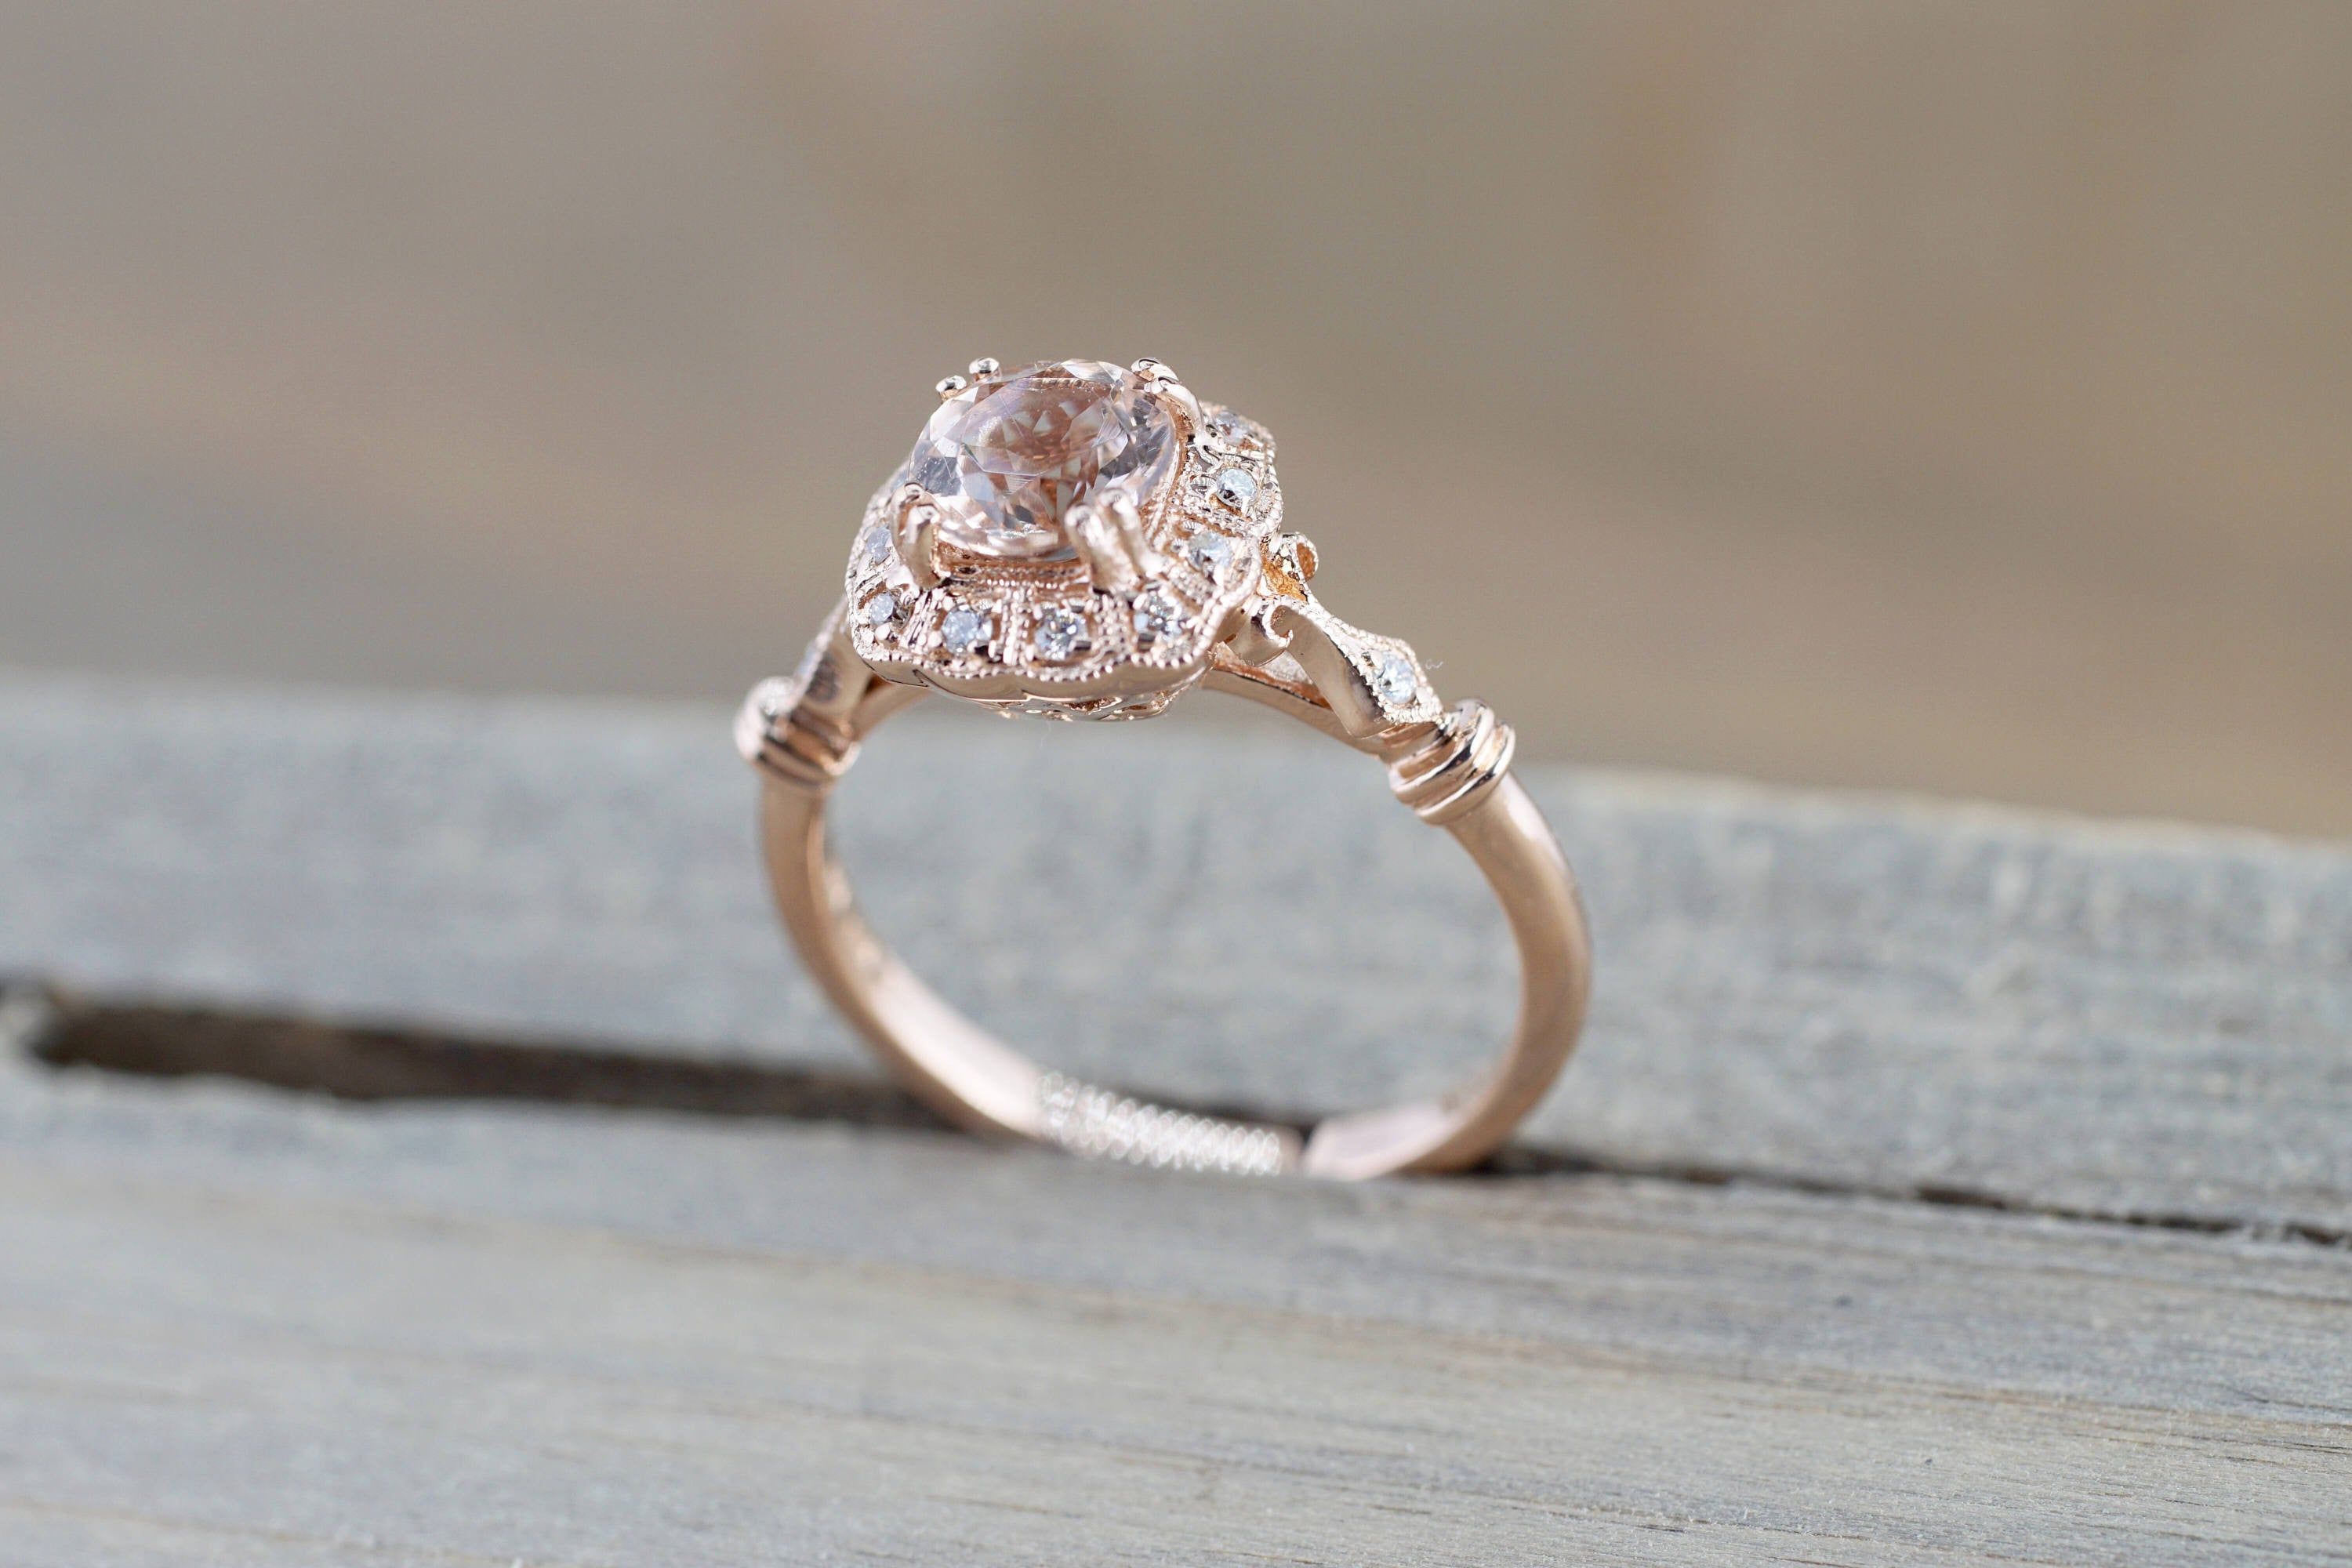 14k Rose Gold Vintage Diamond Morganite Engagement Promise Ring Rope Bead Vintage Art Deco - Brilliant Facets